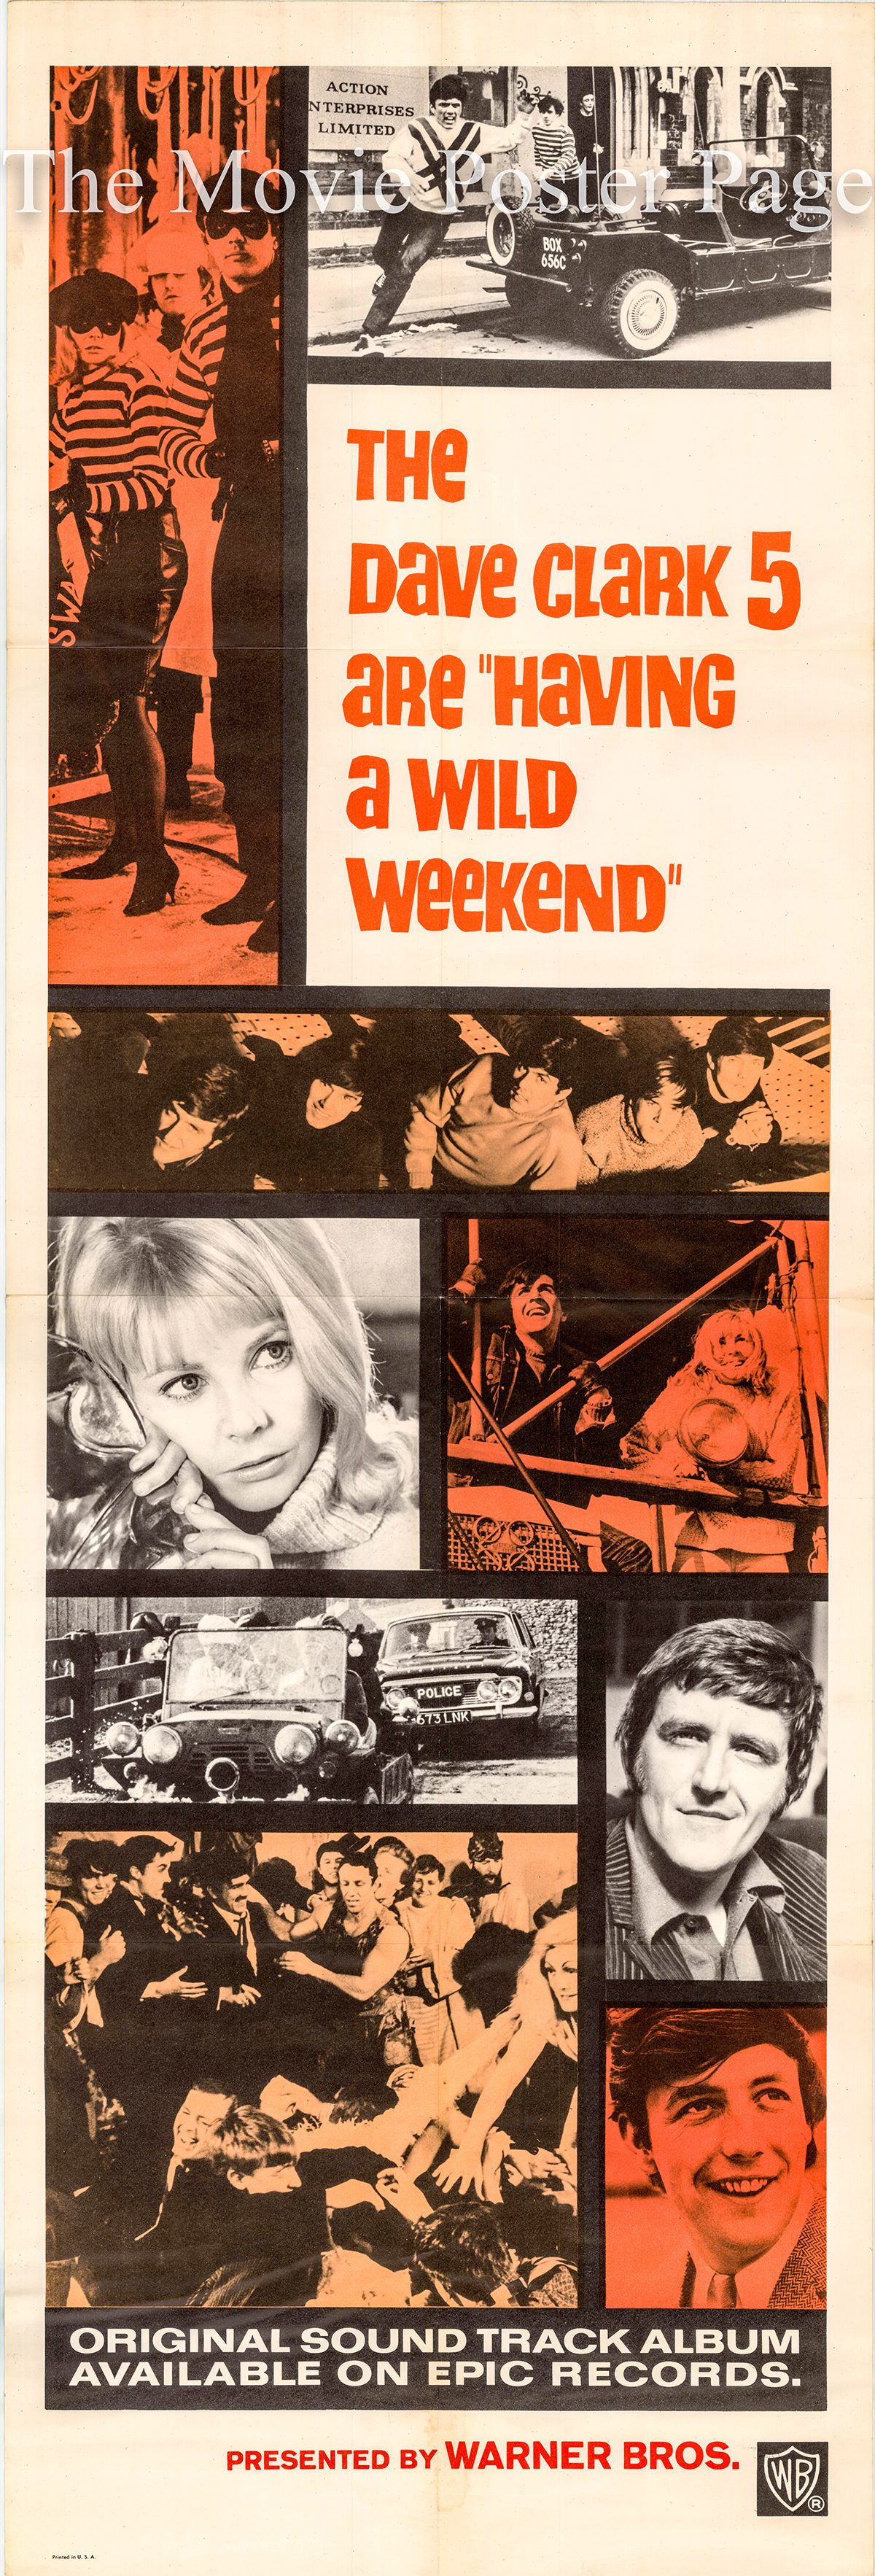 Pictured is a US door panel poster for the 1965 John Boorman film Having a Wild Weekend starring the Dave Clark Five.